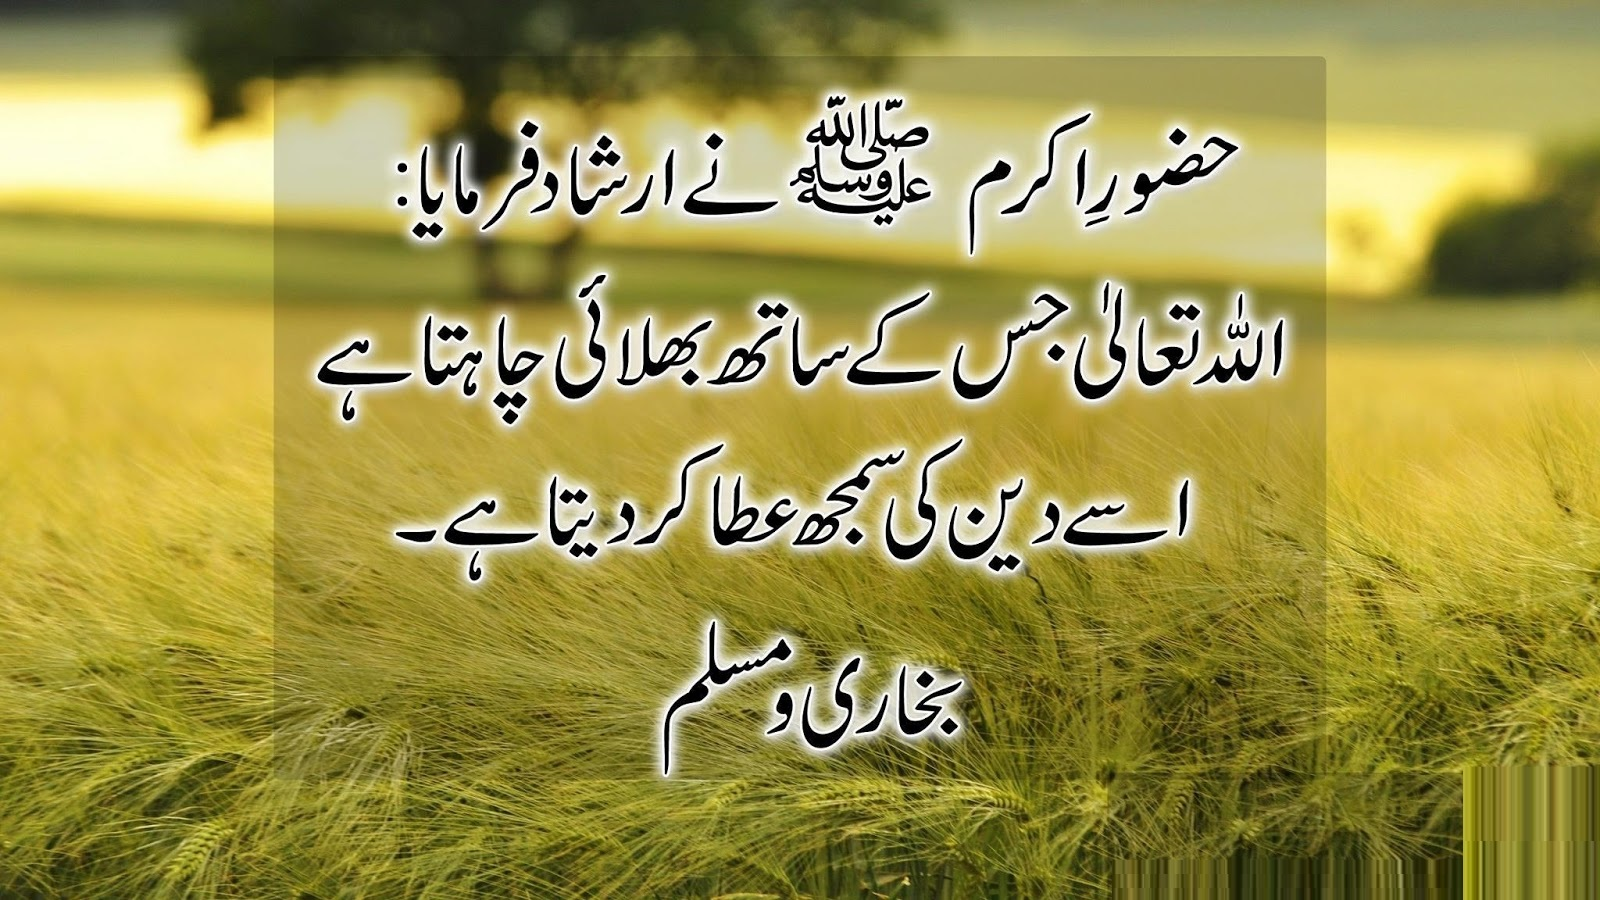 Urdu quotes about life and loves 2017 urdu quotes about life and love 2017 love quotes in urdu images 2017 love quotes in urdu with english translation 2017